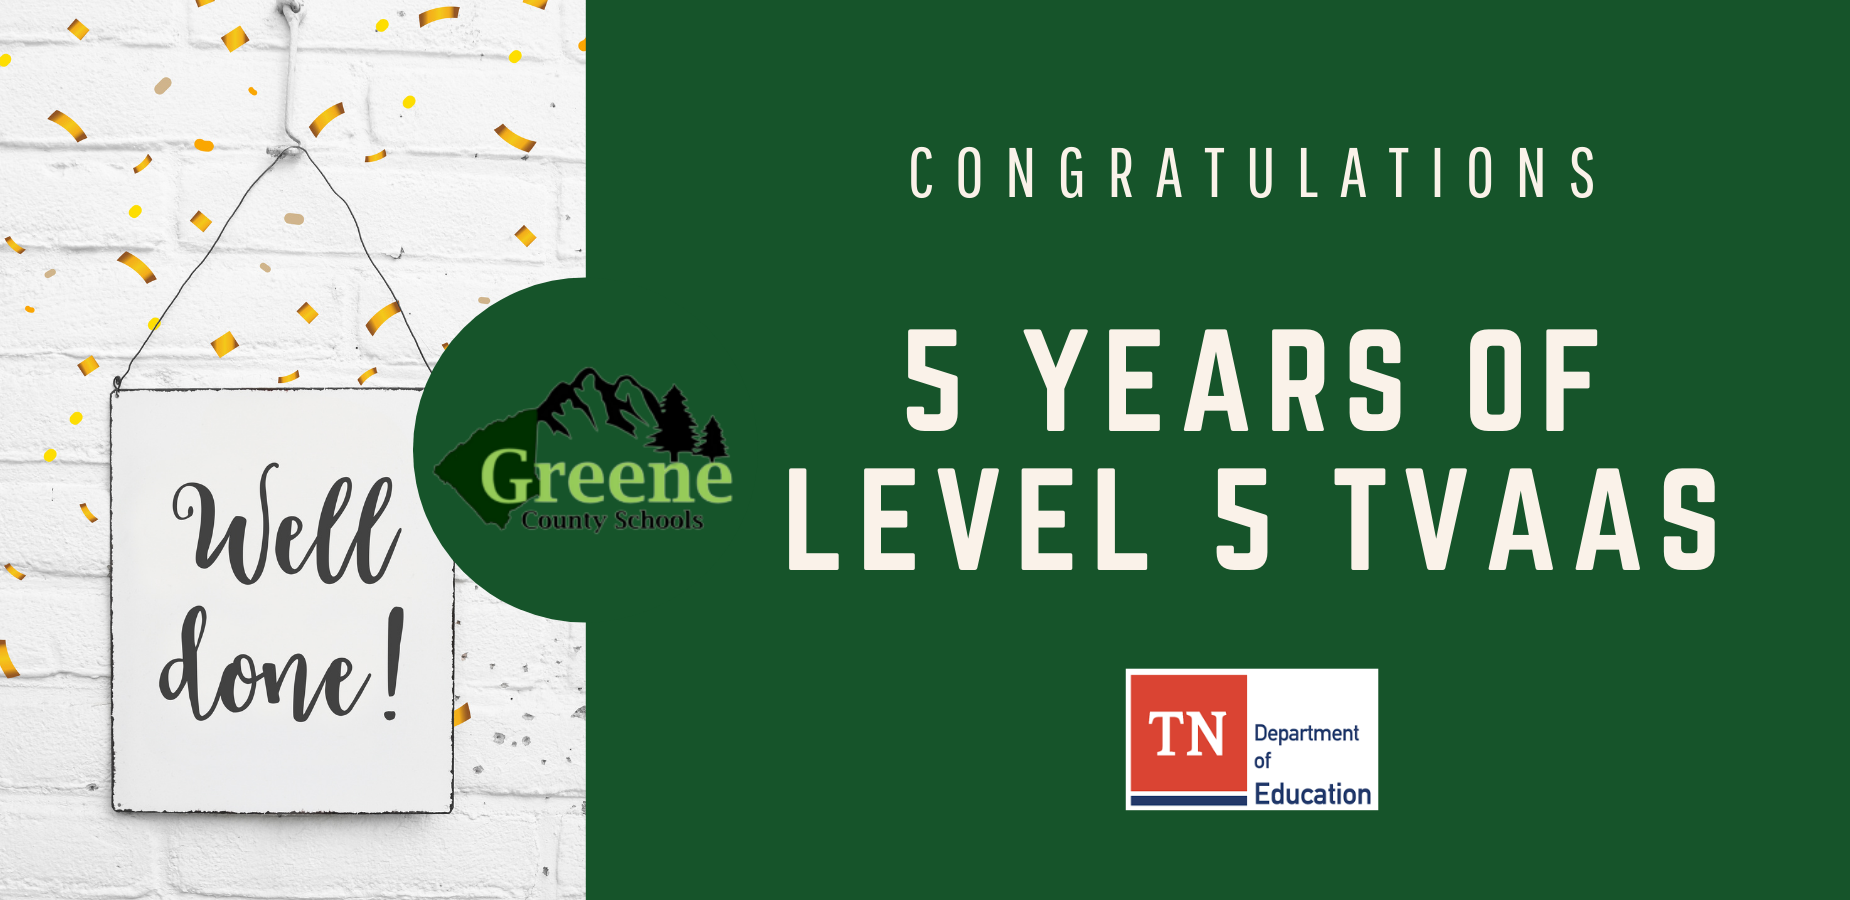 GCS Achieves Level 5 TVAAS scores for the fifth consecutive year.